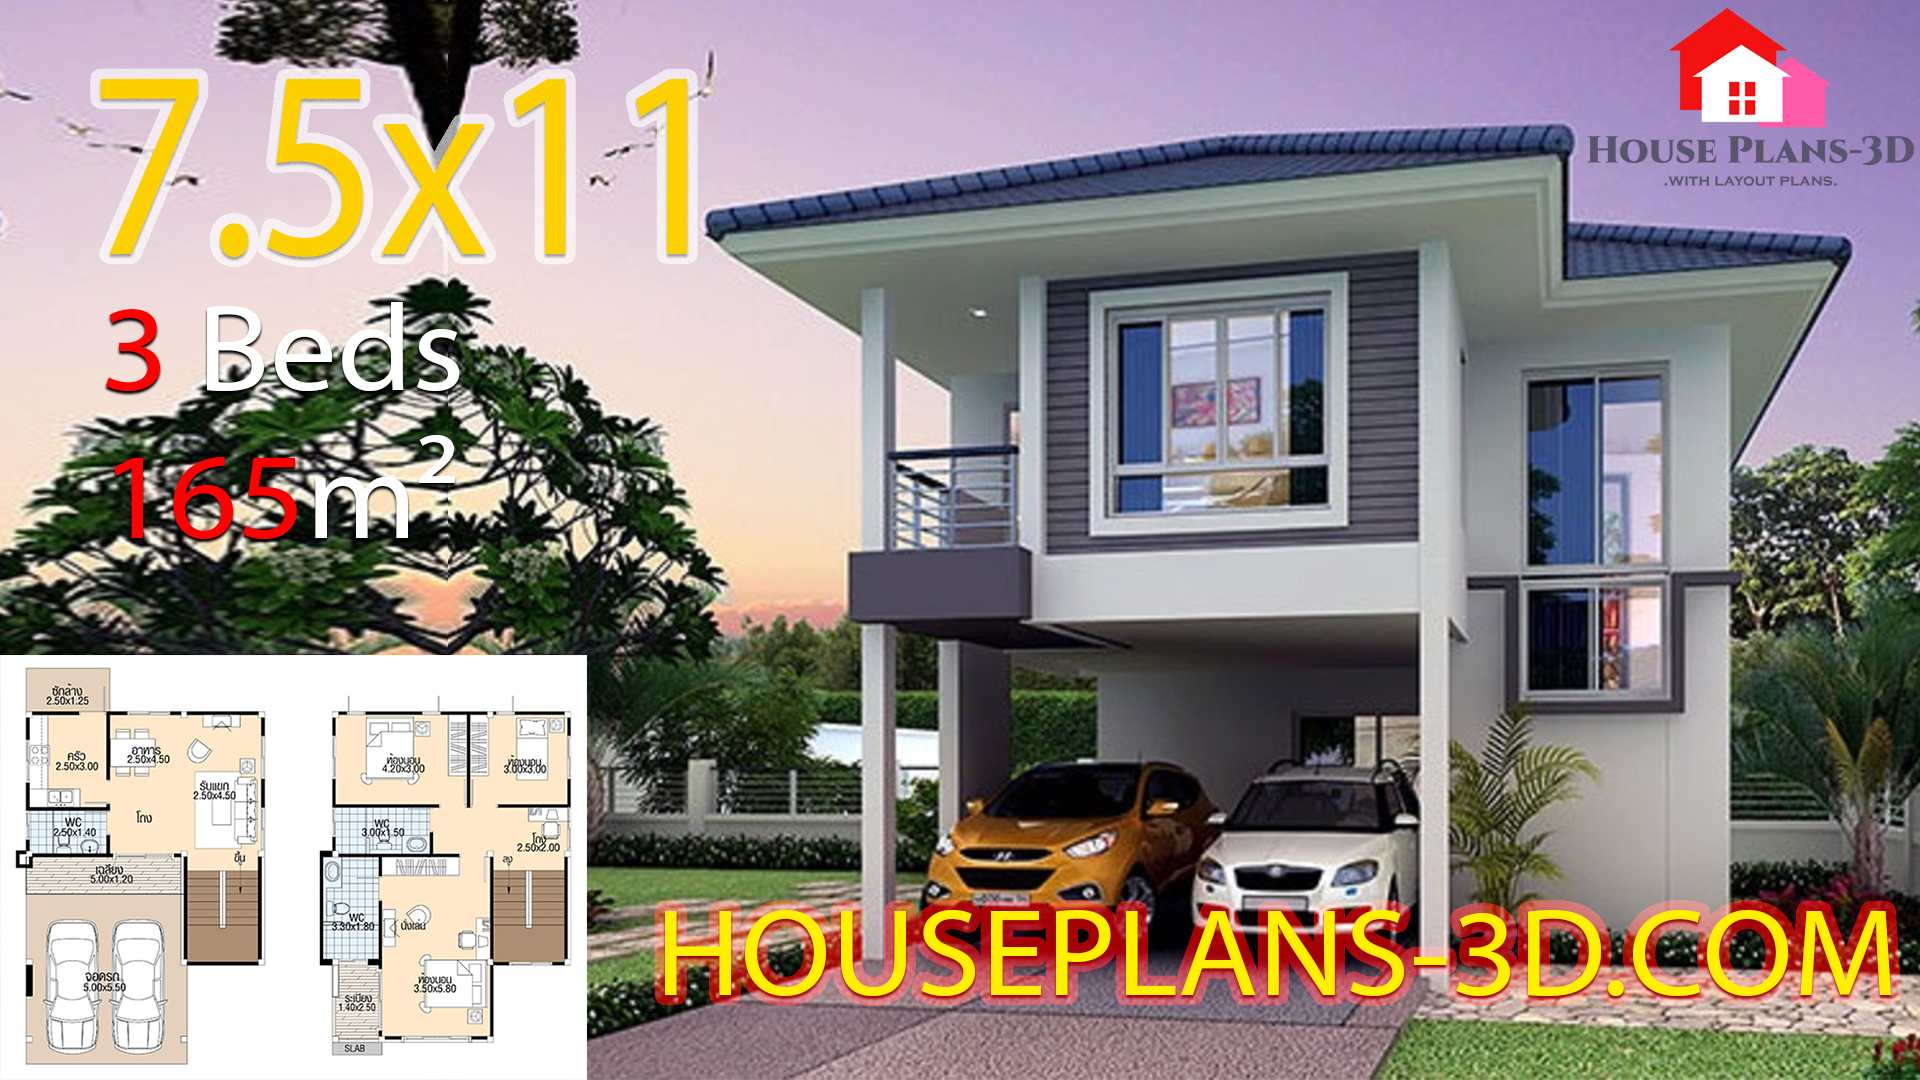 House plans 3d 7.5×11 with 3 bedrooms